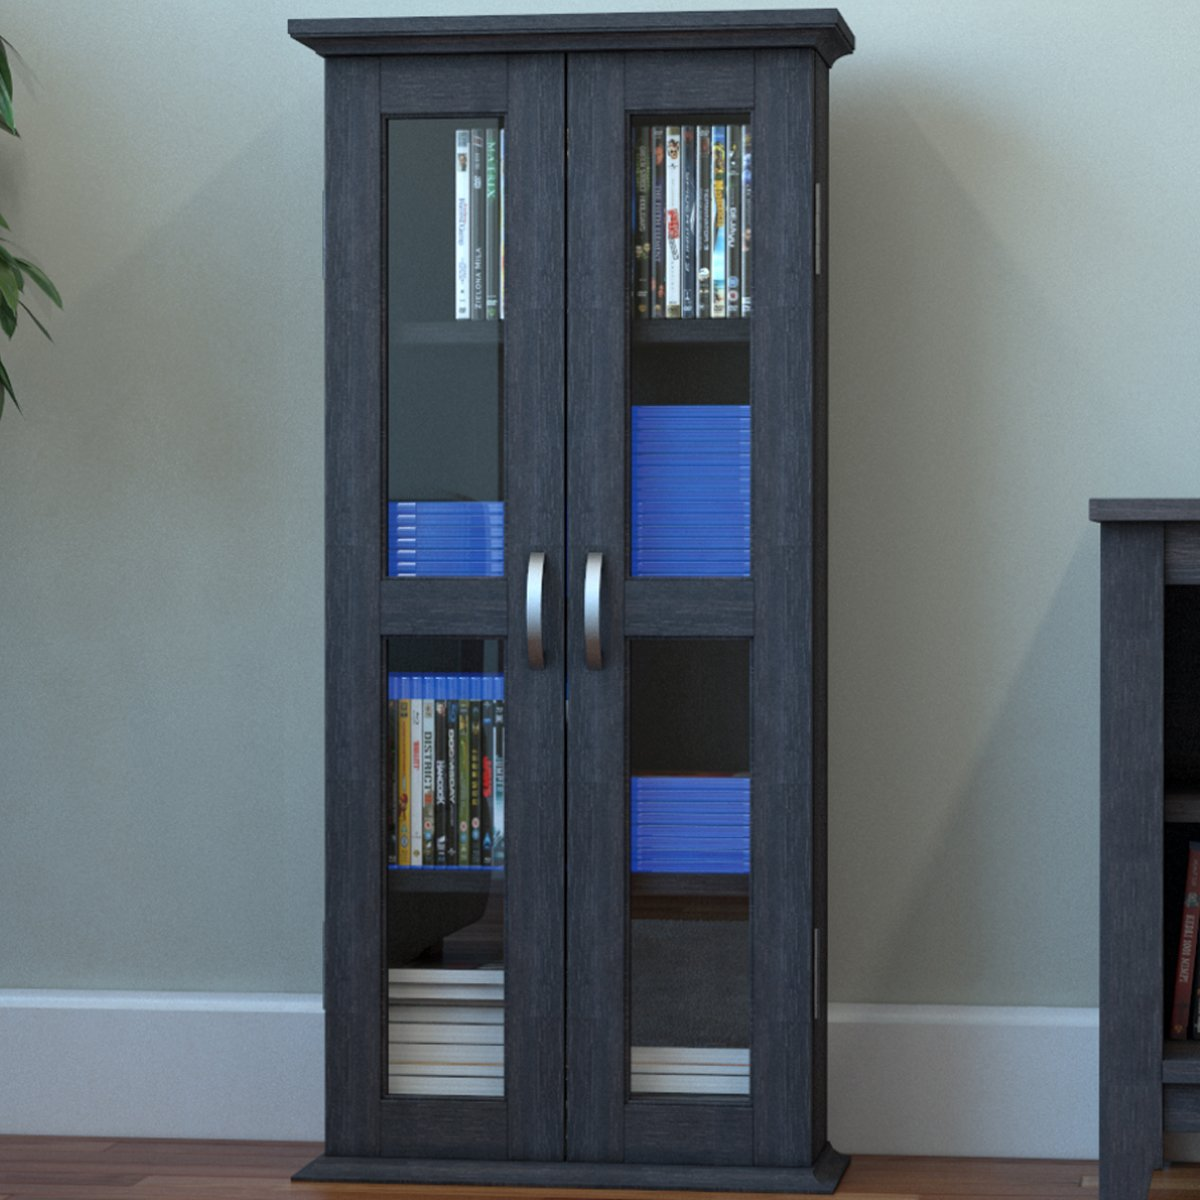 Ryan Rove Kirkwell Wood DVD Storage Shelves Tower Media Cabinet Organizer, Home Decor, Bedroom and Living Room Furniture Wooden